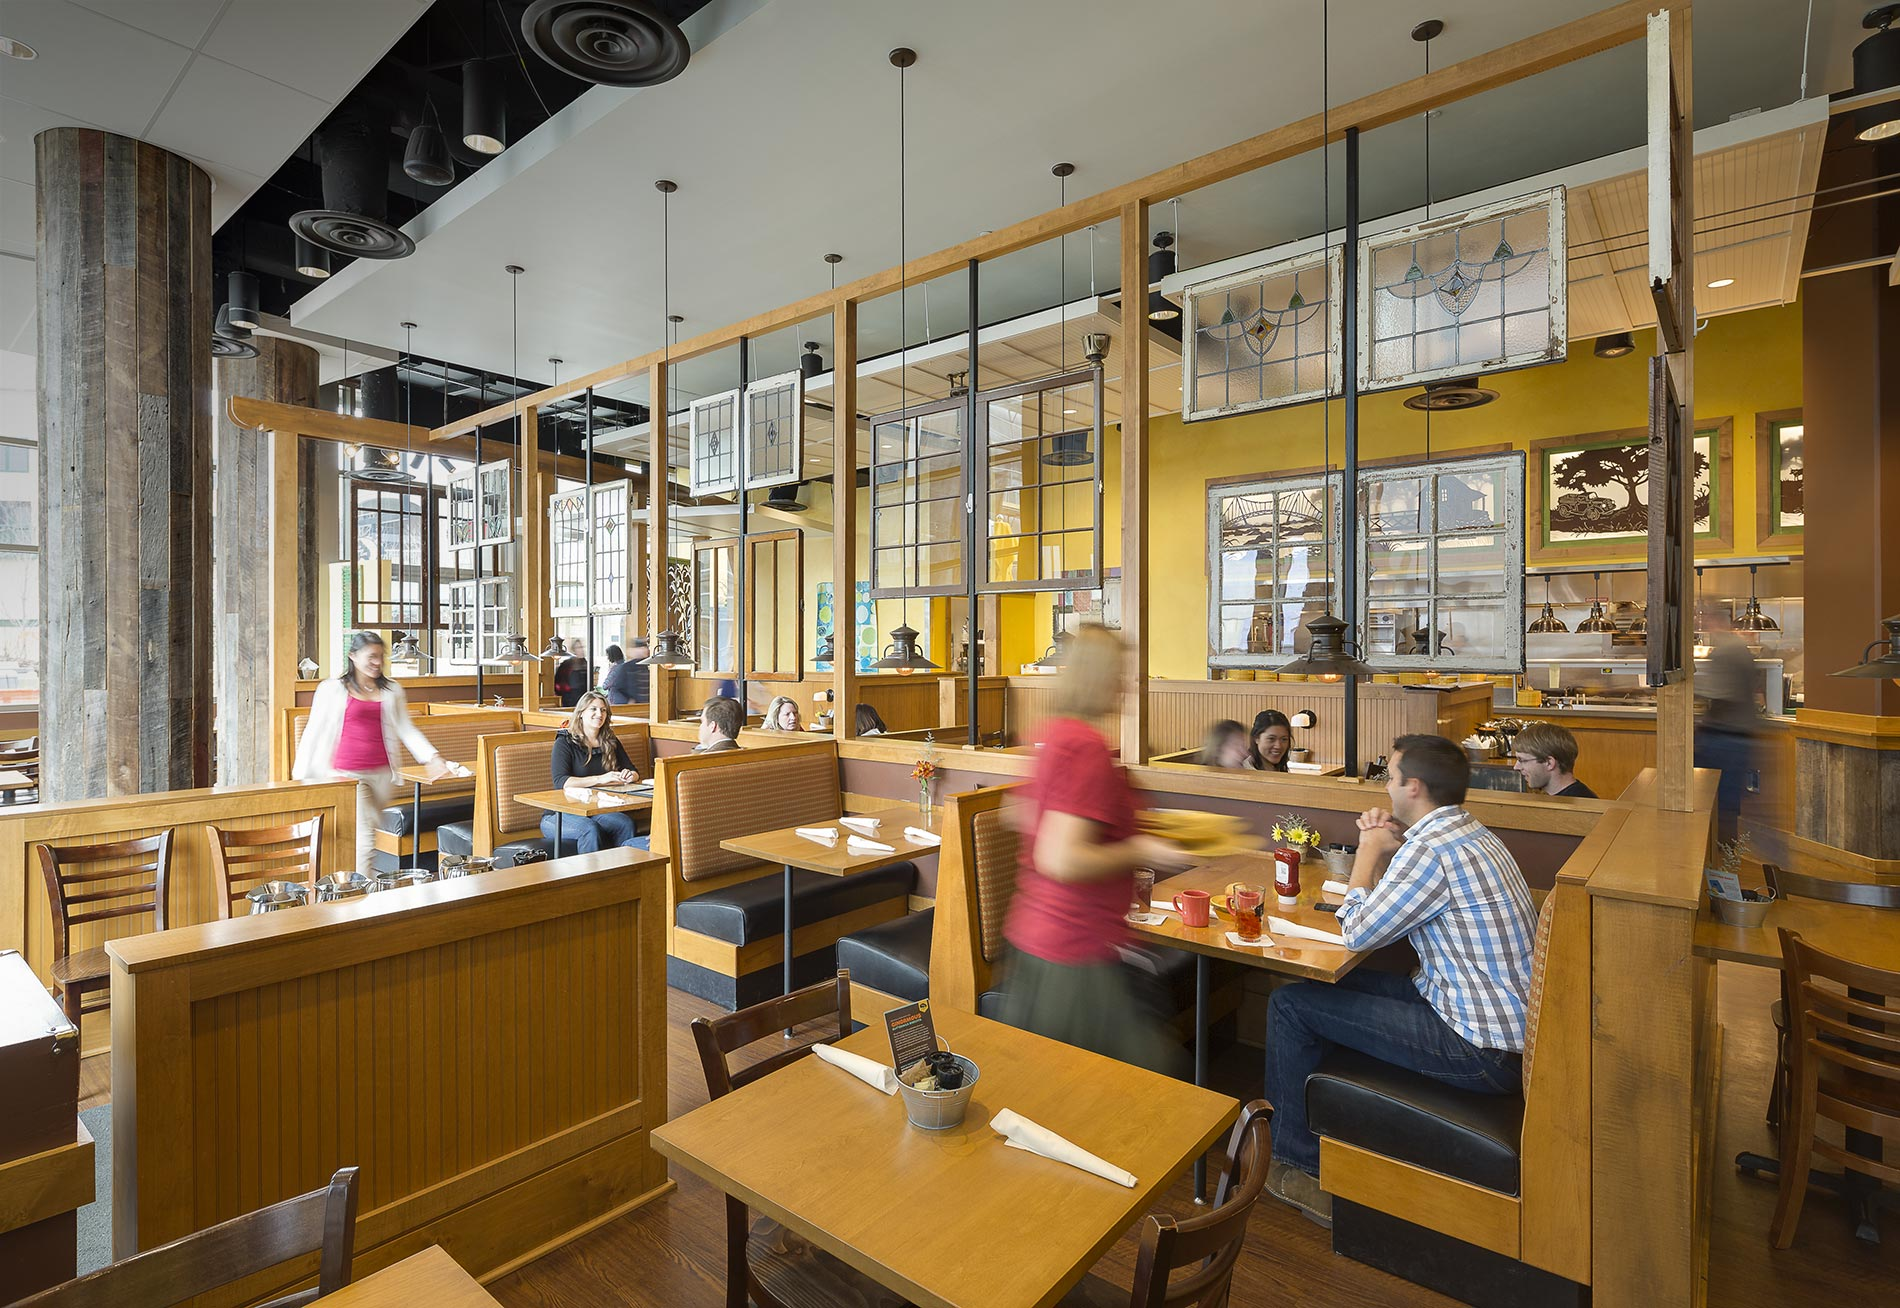 Tupelo honey cafe dp3 architects Architects in greenville sc